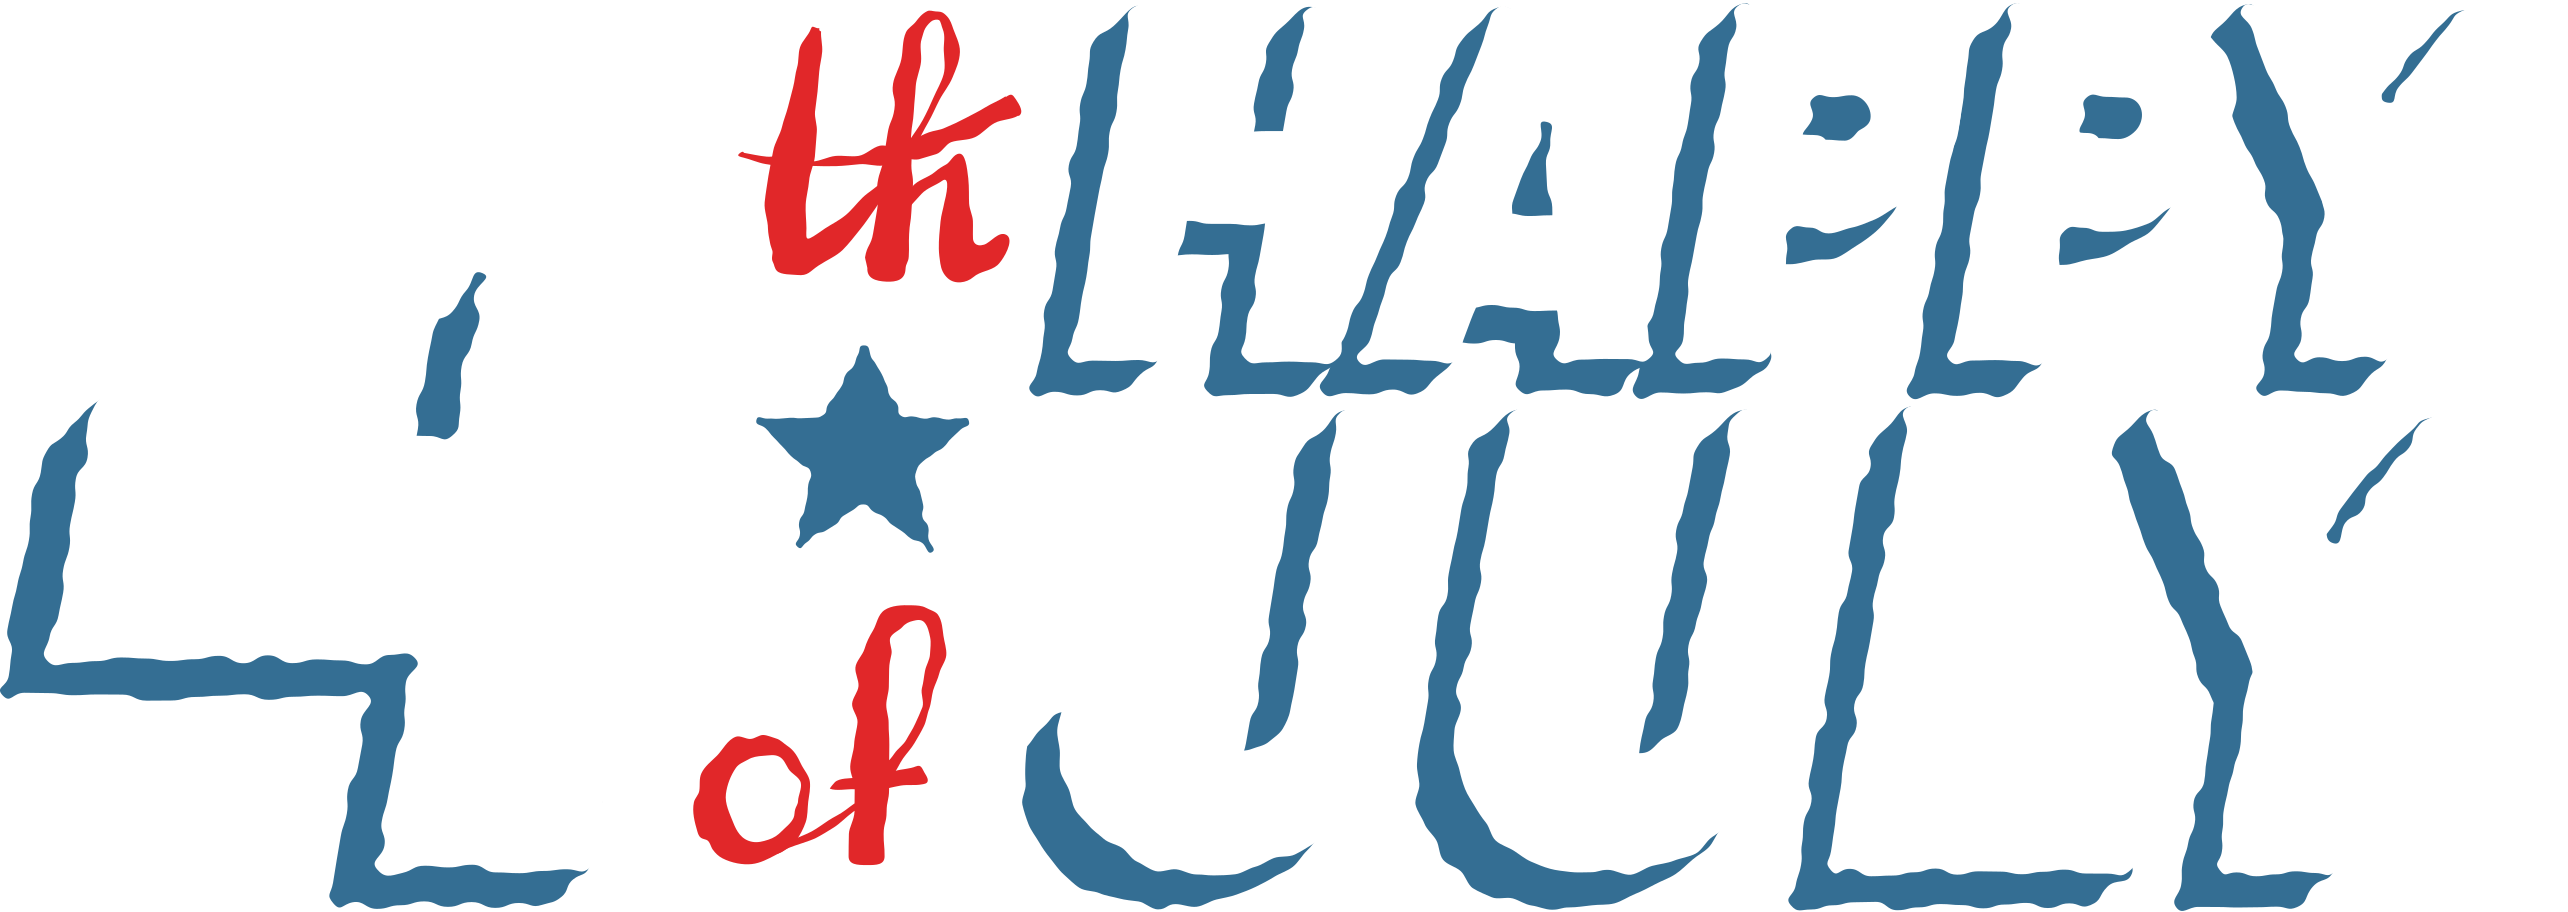 fourth of july lettering Clipart illustration in PNG, SVG